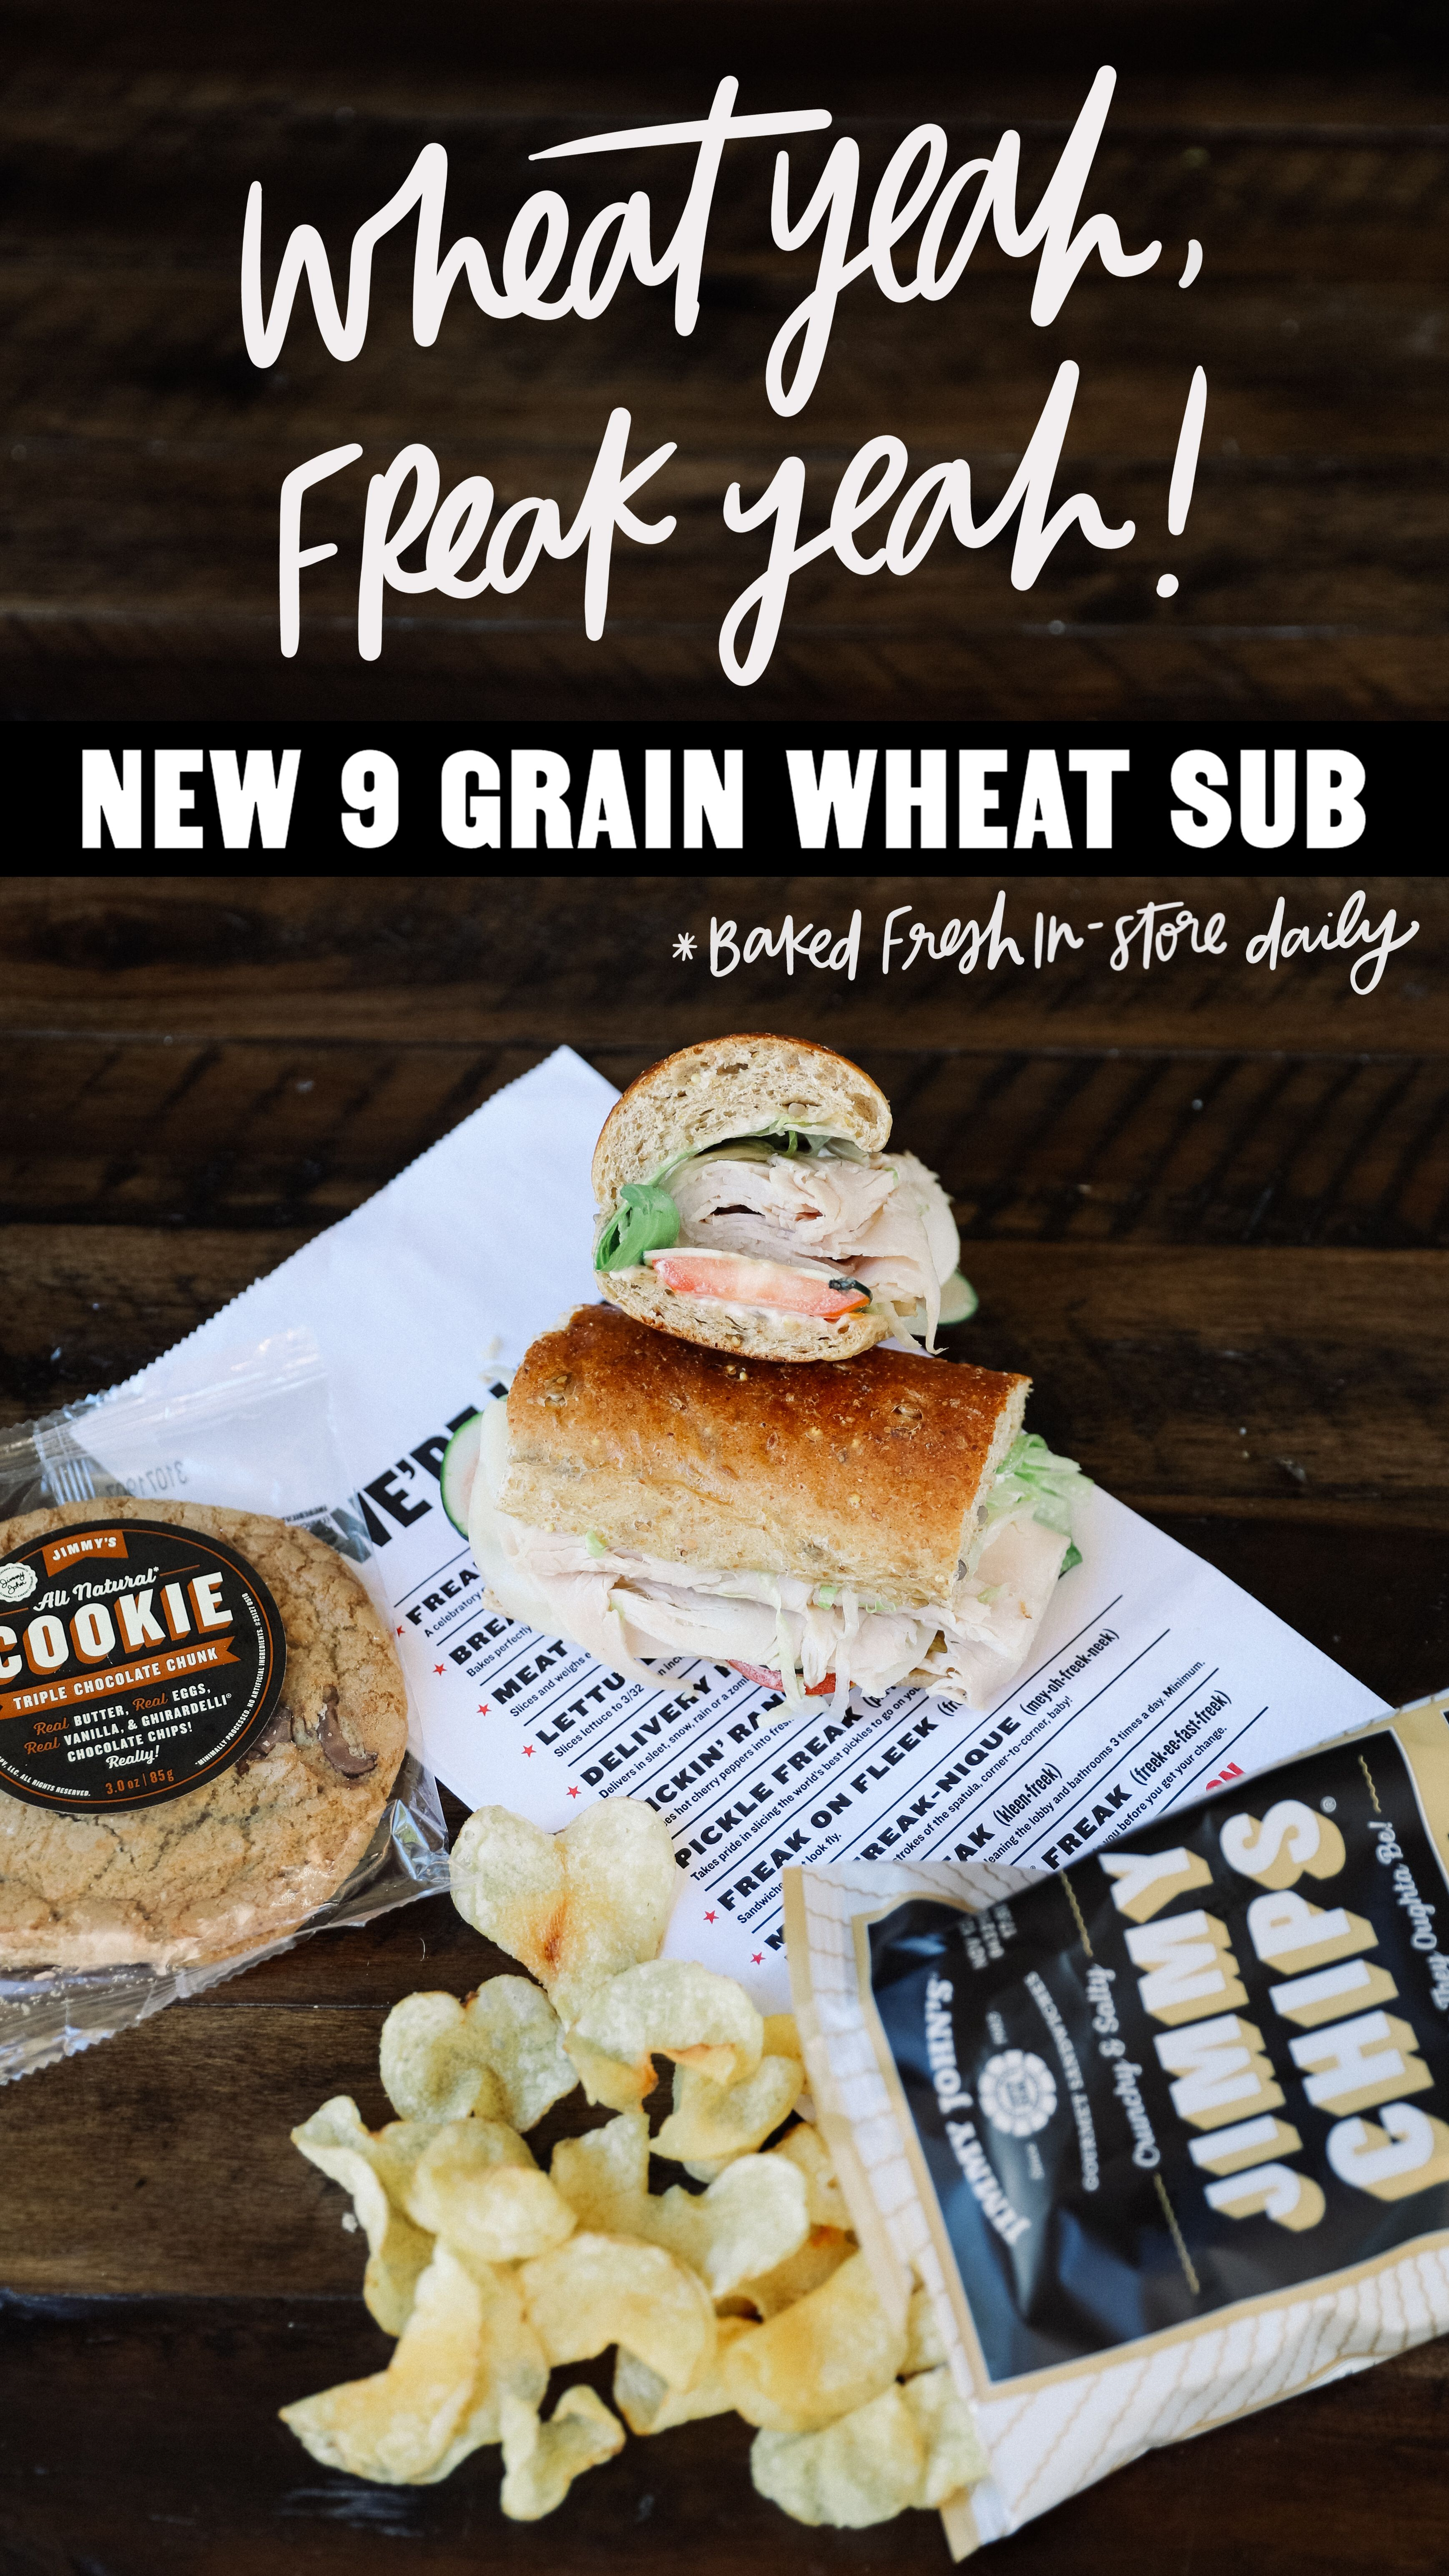 Jimmy John's is taking bread to a whole new level with